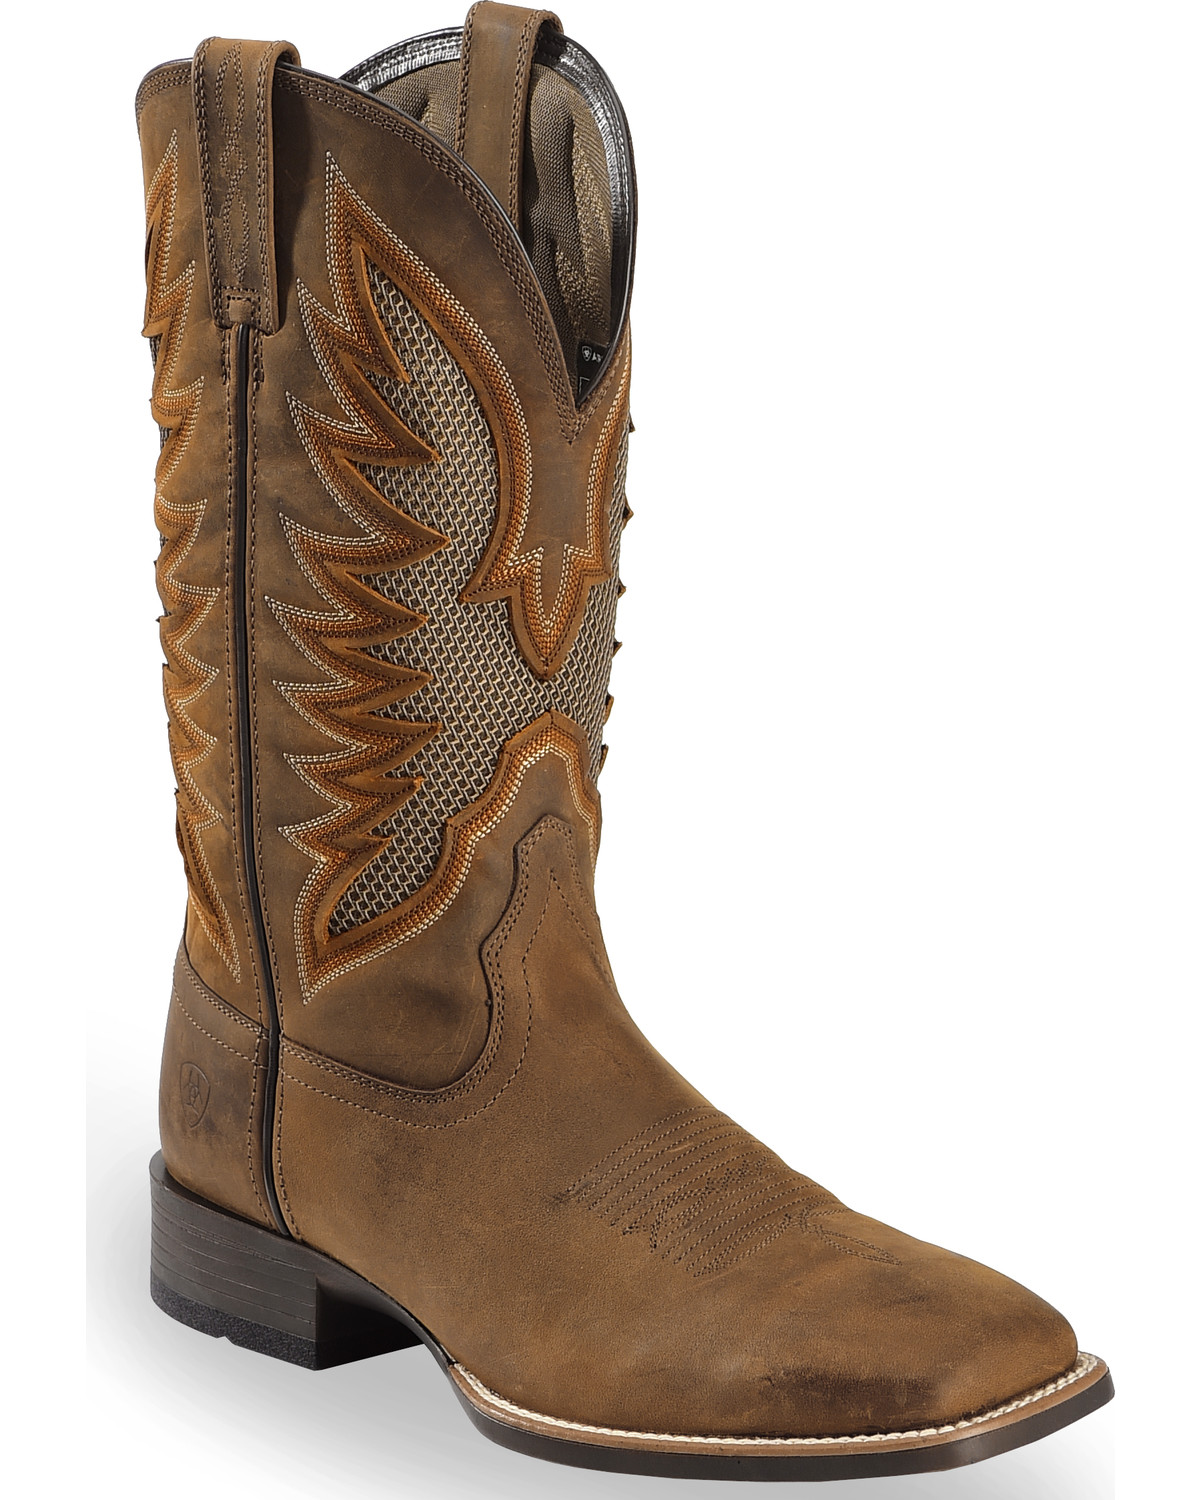 Ariat Men's VentTEK Ultra Quickdraw Cowboy Boots - Square ...